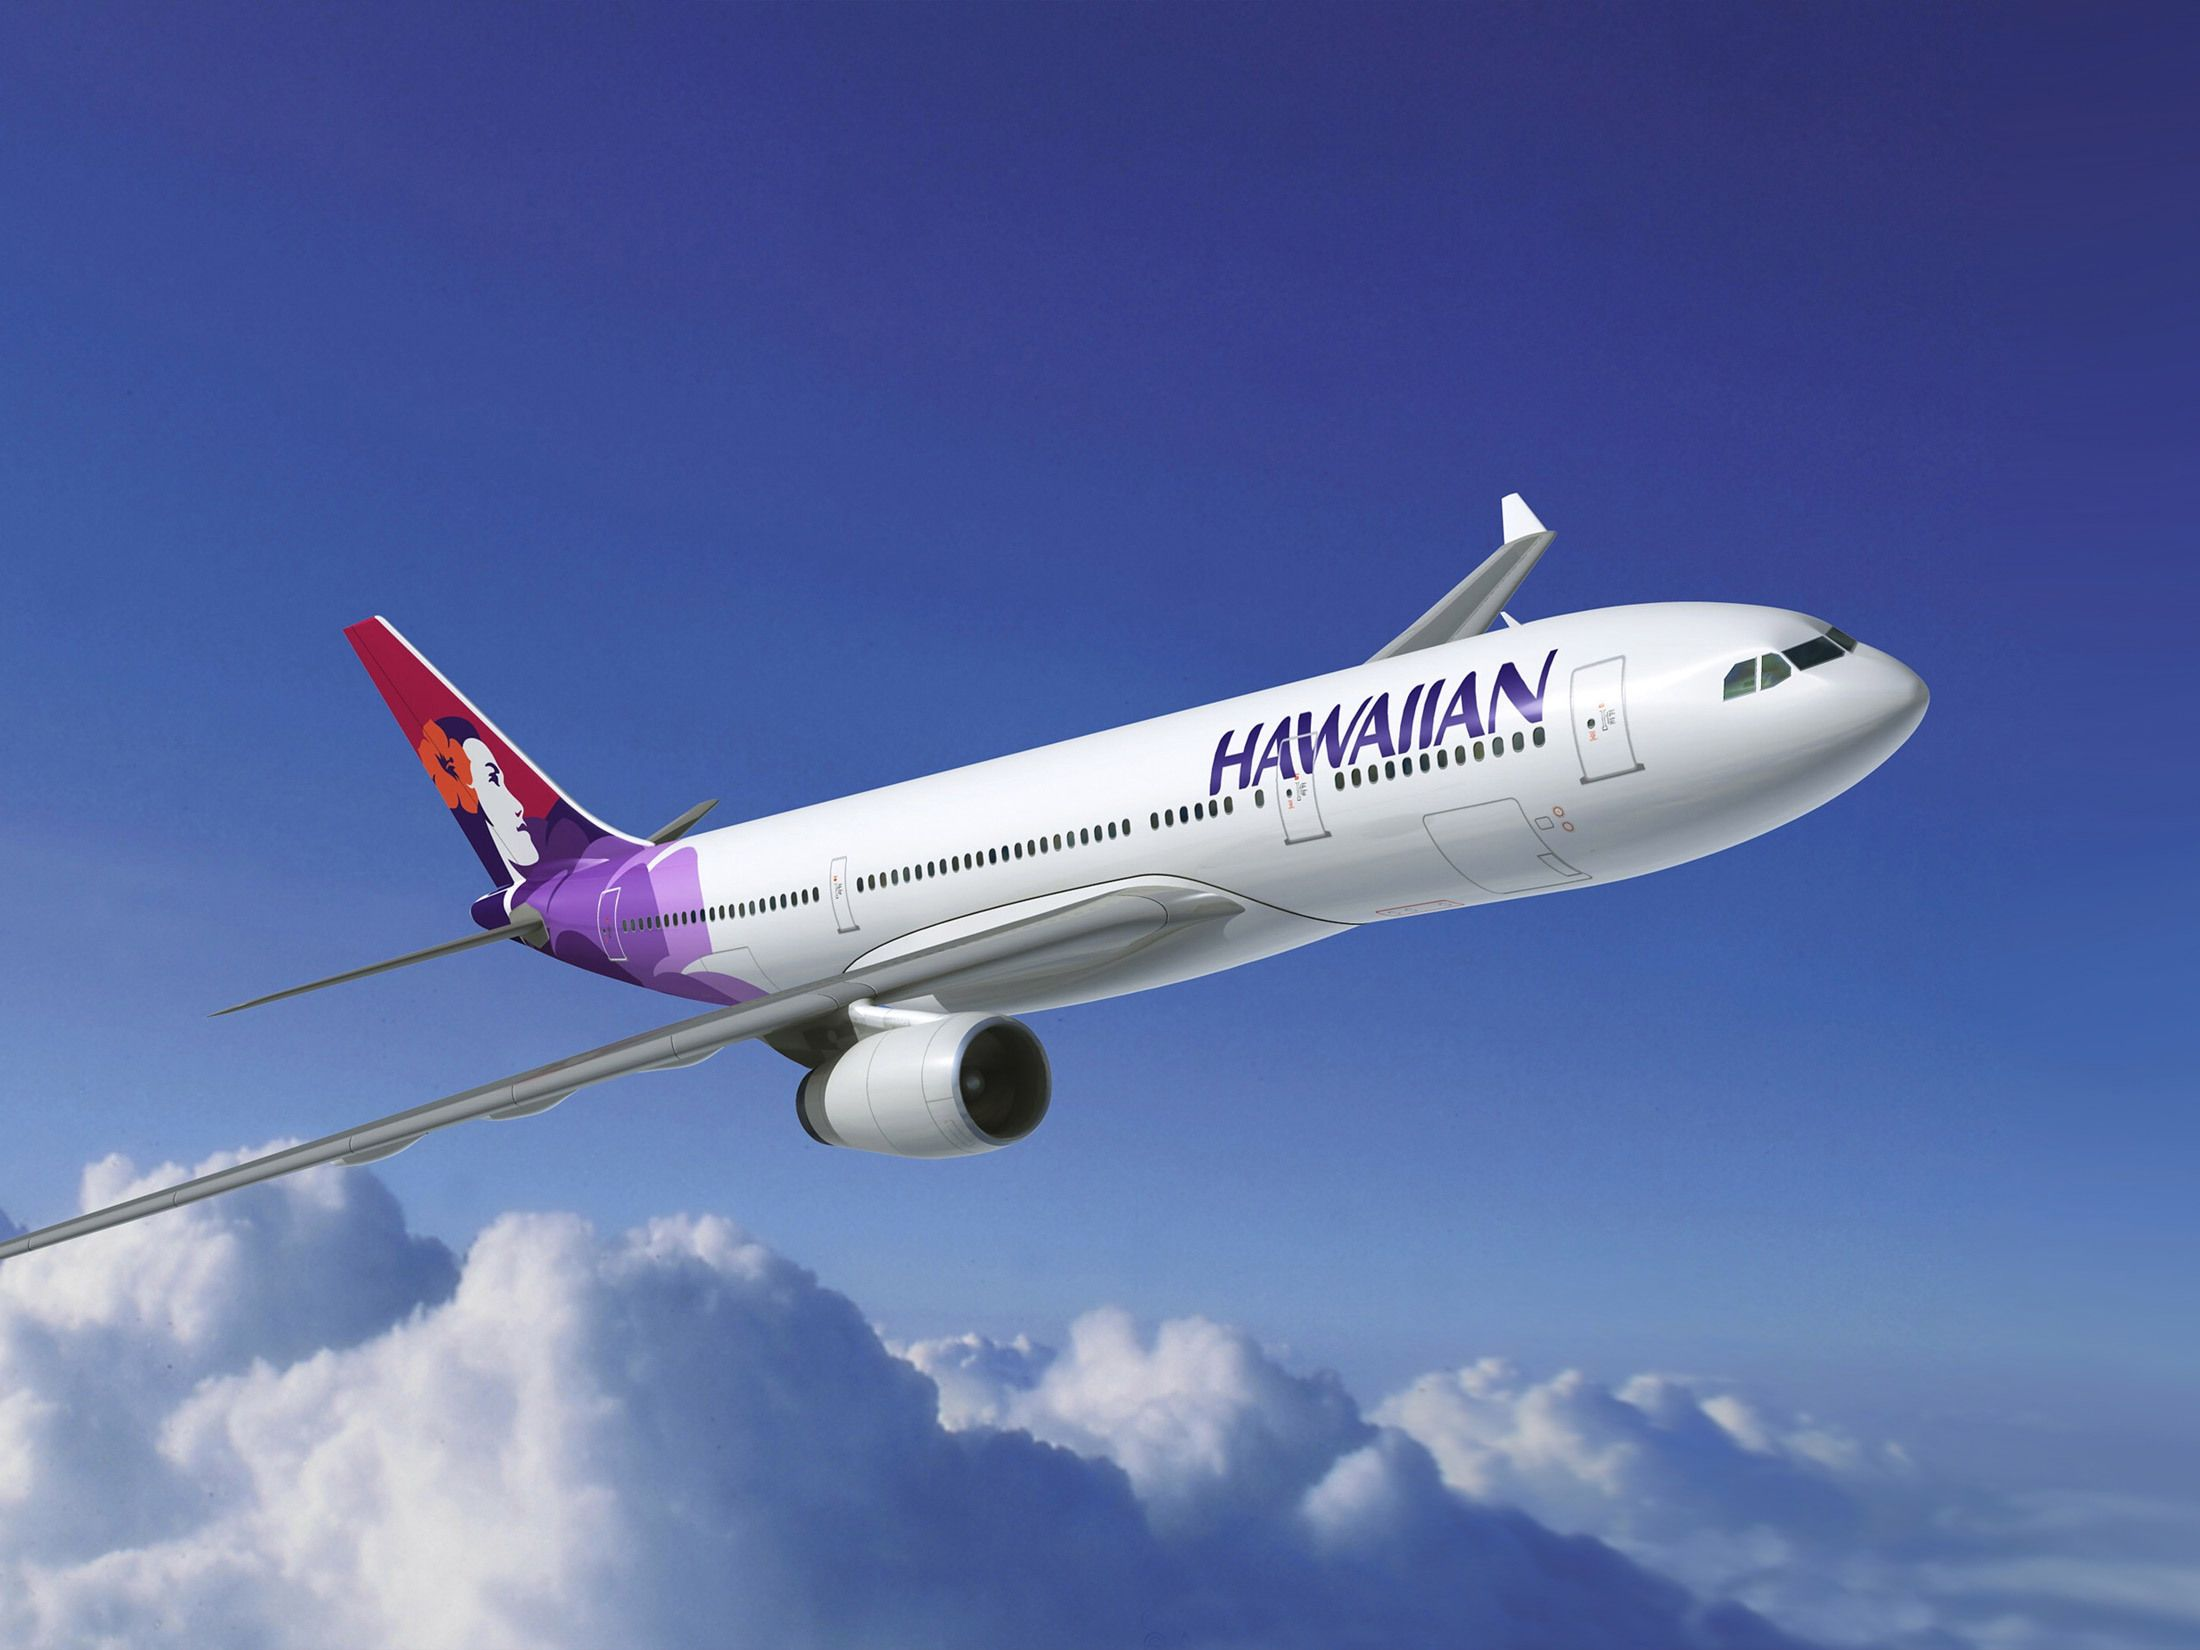 Limited time savings to Hawaii! Sale on First Class fares